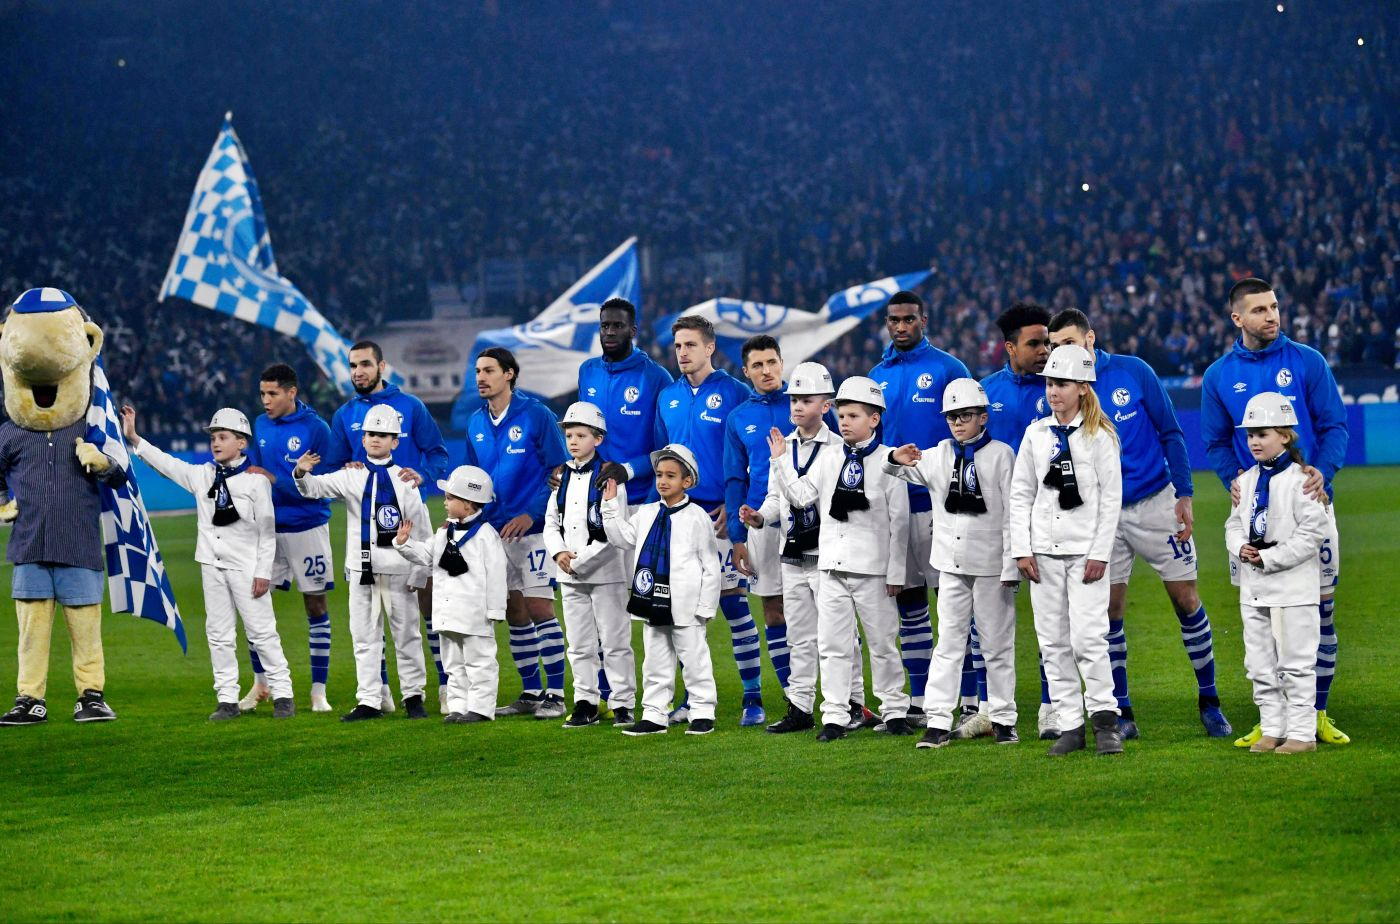 -- Schalke's players stand behind player escorts wering miner's clothes ahead of the German first division football match between FC Schalke 04 and Bayer Leverkusen on December 19, 2018. When Germany's last black coal mine shutters on December 21, 2018, it's not just workers who may shed a tear -- football fans too will mourn the end of the over 150-year-old industry. The industrial Ruhr region -- rich in coal, the blood and soul of industrial Germany since the 19th century -- is also the gritty home turf of some of Germany's best-loved football clubs. - Germany OUT / DFL REGULATIONS PROHIBIT ANY USE OF PHOTOGRAPHS AS IMAGE SEQUENCES AND/OR QUASI-VIDEO / AFP / dpa / Ina Fassbender / DFL REGULATIONS PROHIBIT ANY USE OF PHOTOGRAPHS AS IMAGE SEQUENCES AND/OR QUASI-VIDEO